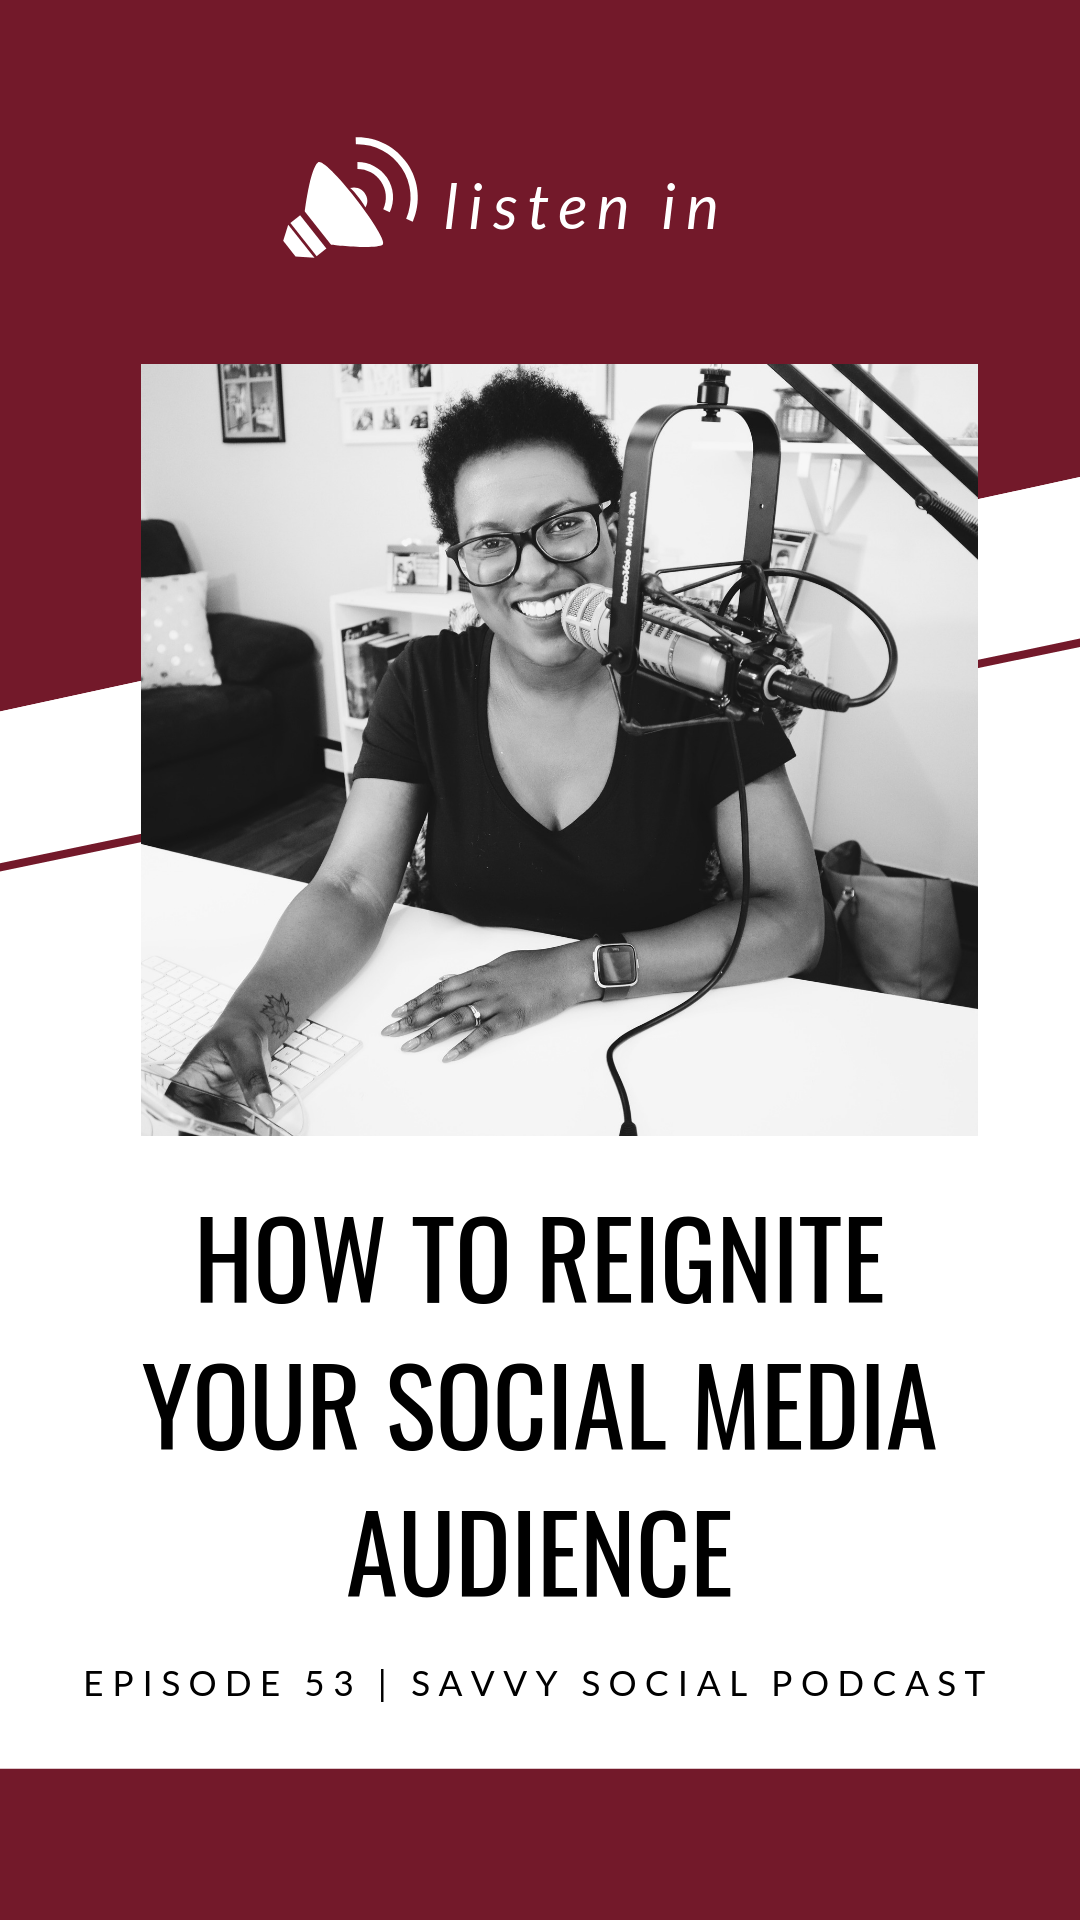 How to Reignite your Social Media Audience